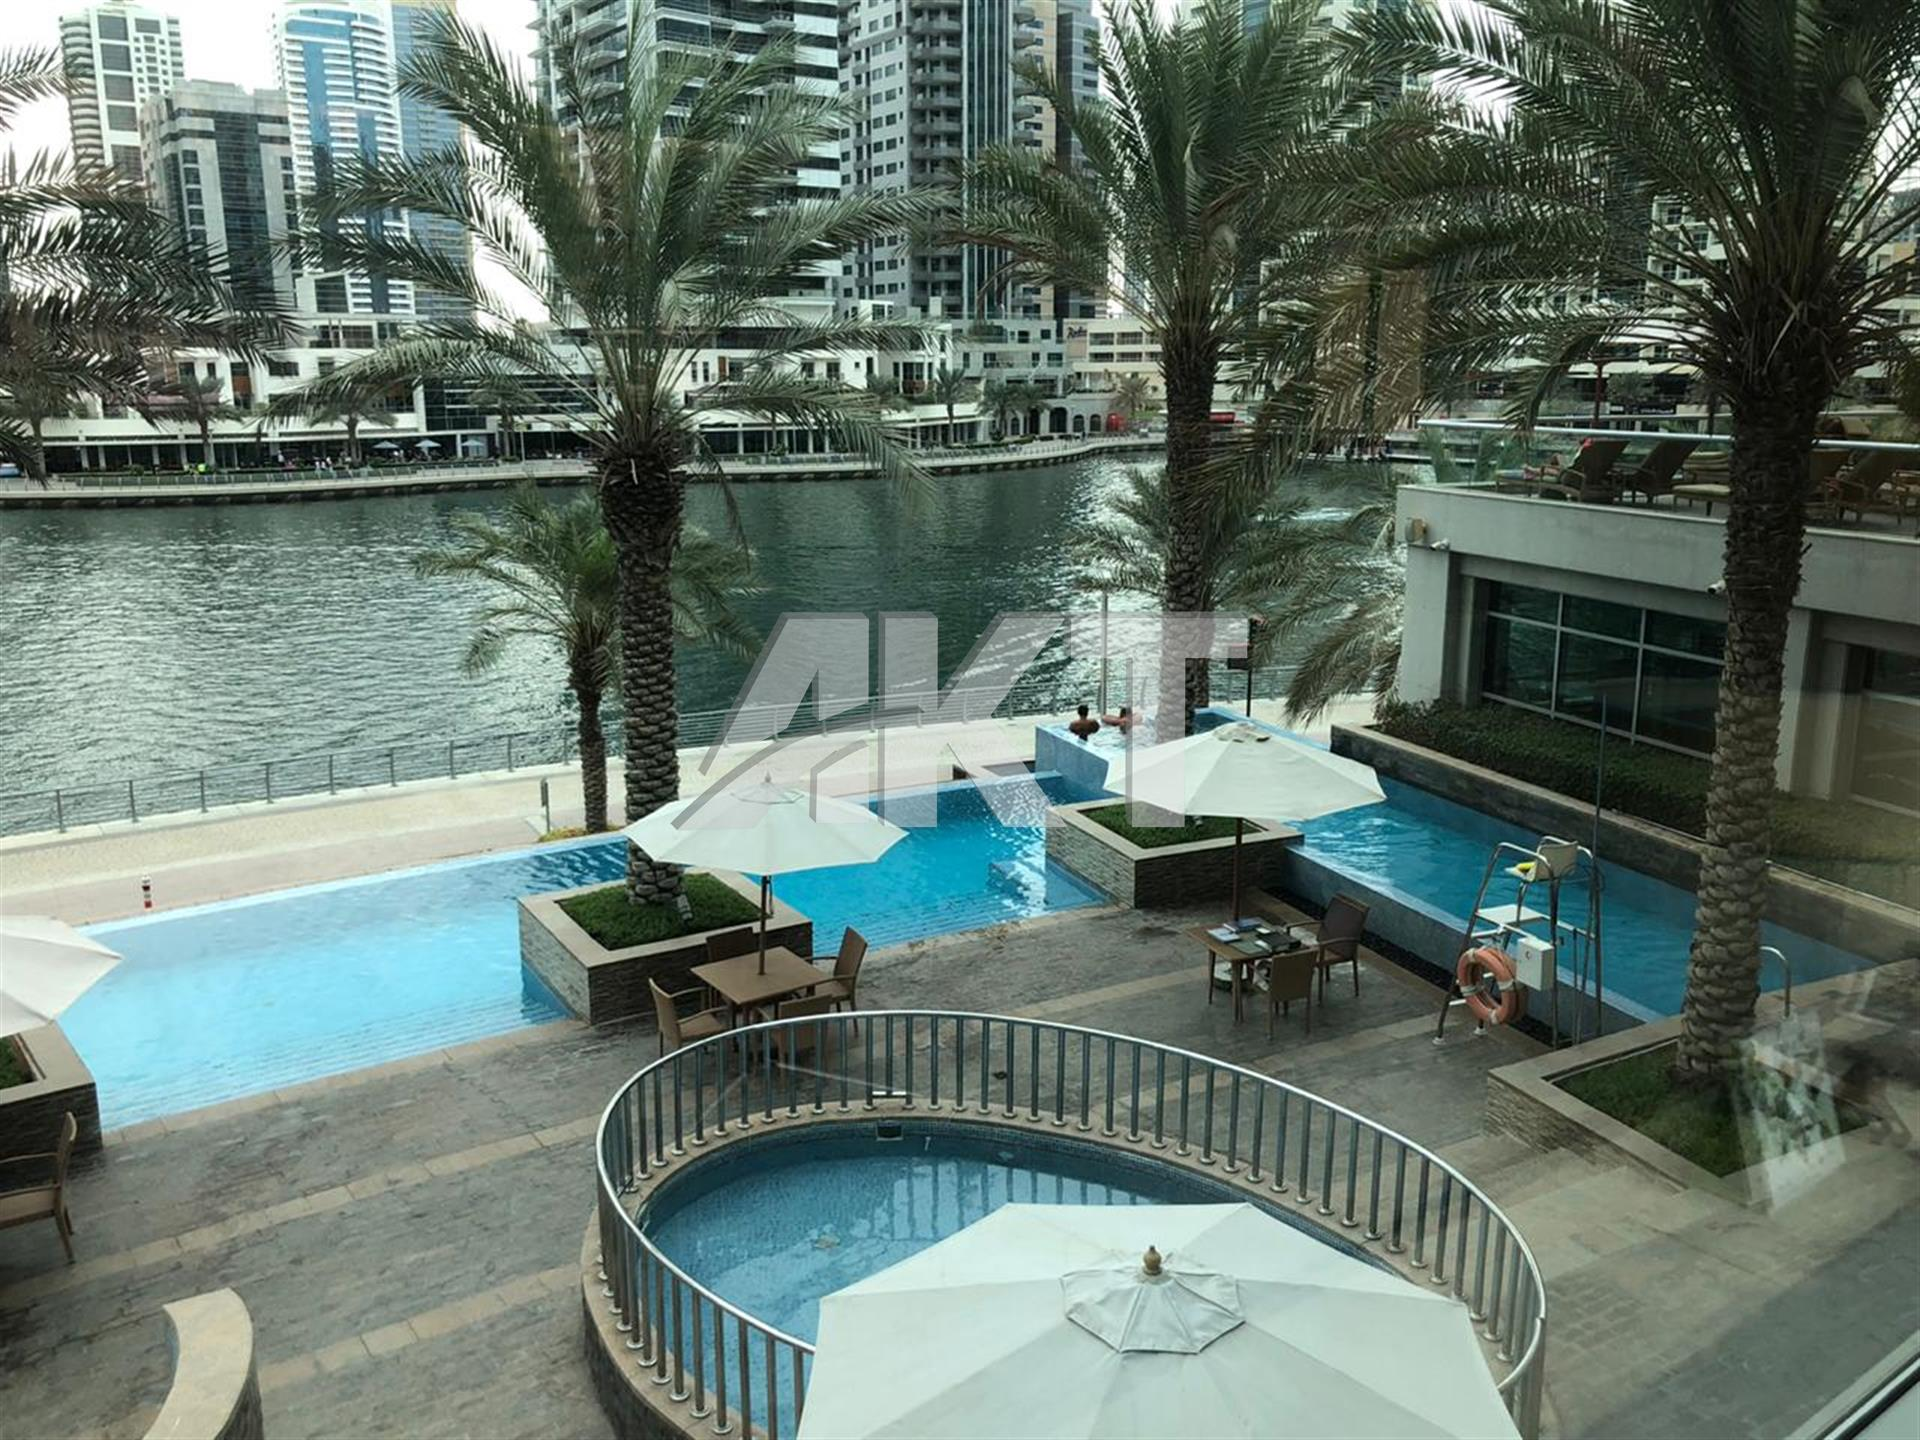 75 K / PARK ISLAND / MARINA / ONE BED / 950 SQFT / BALCONY